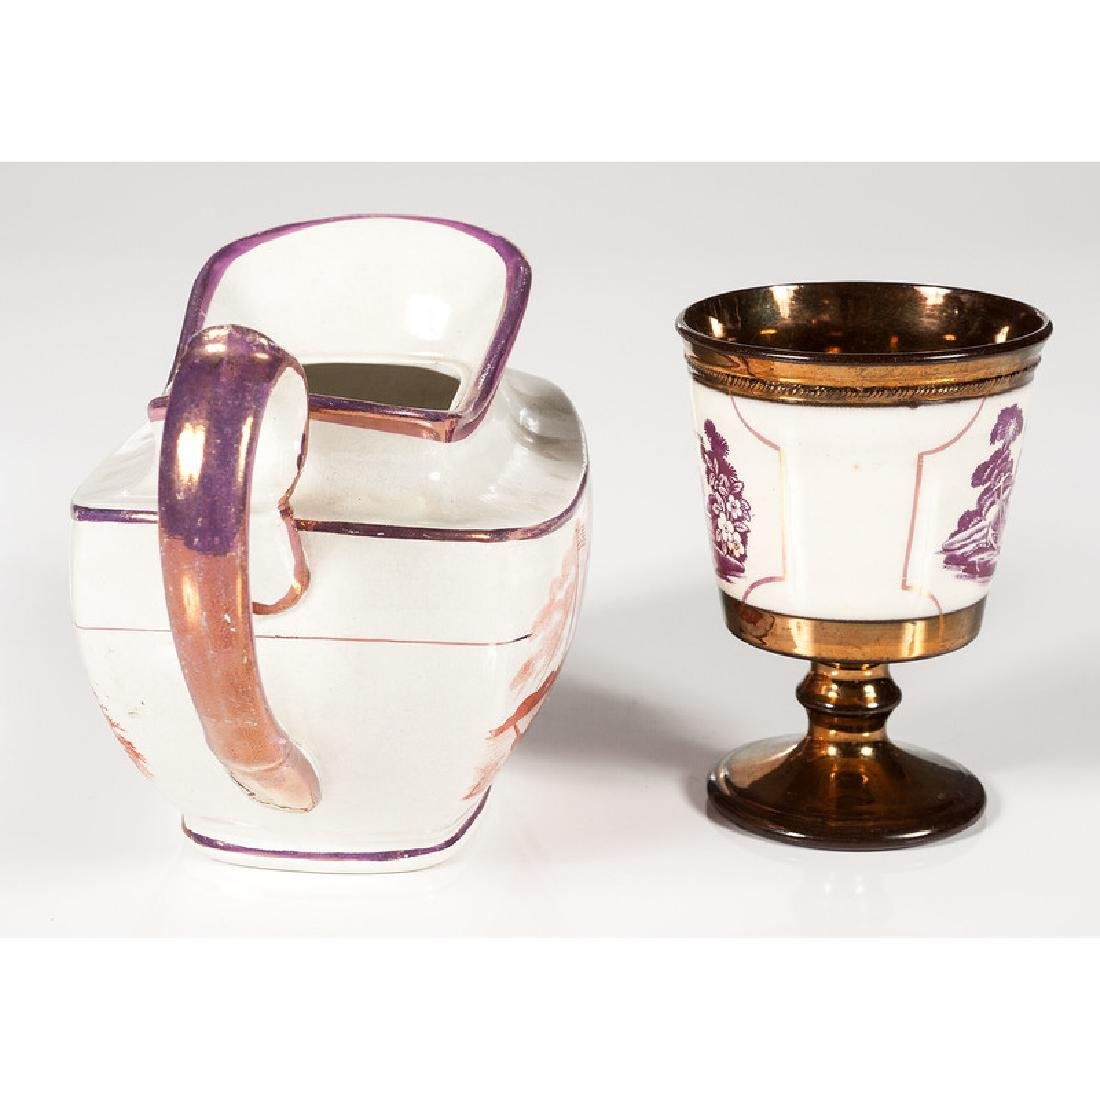 Lusterware Teapot and Goblet - 4